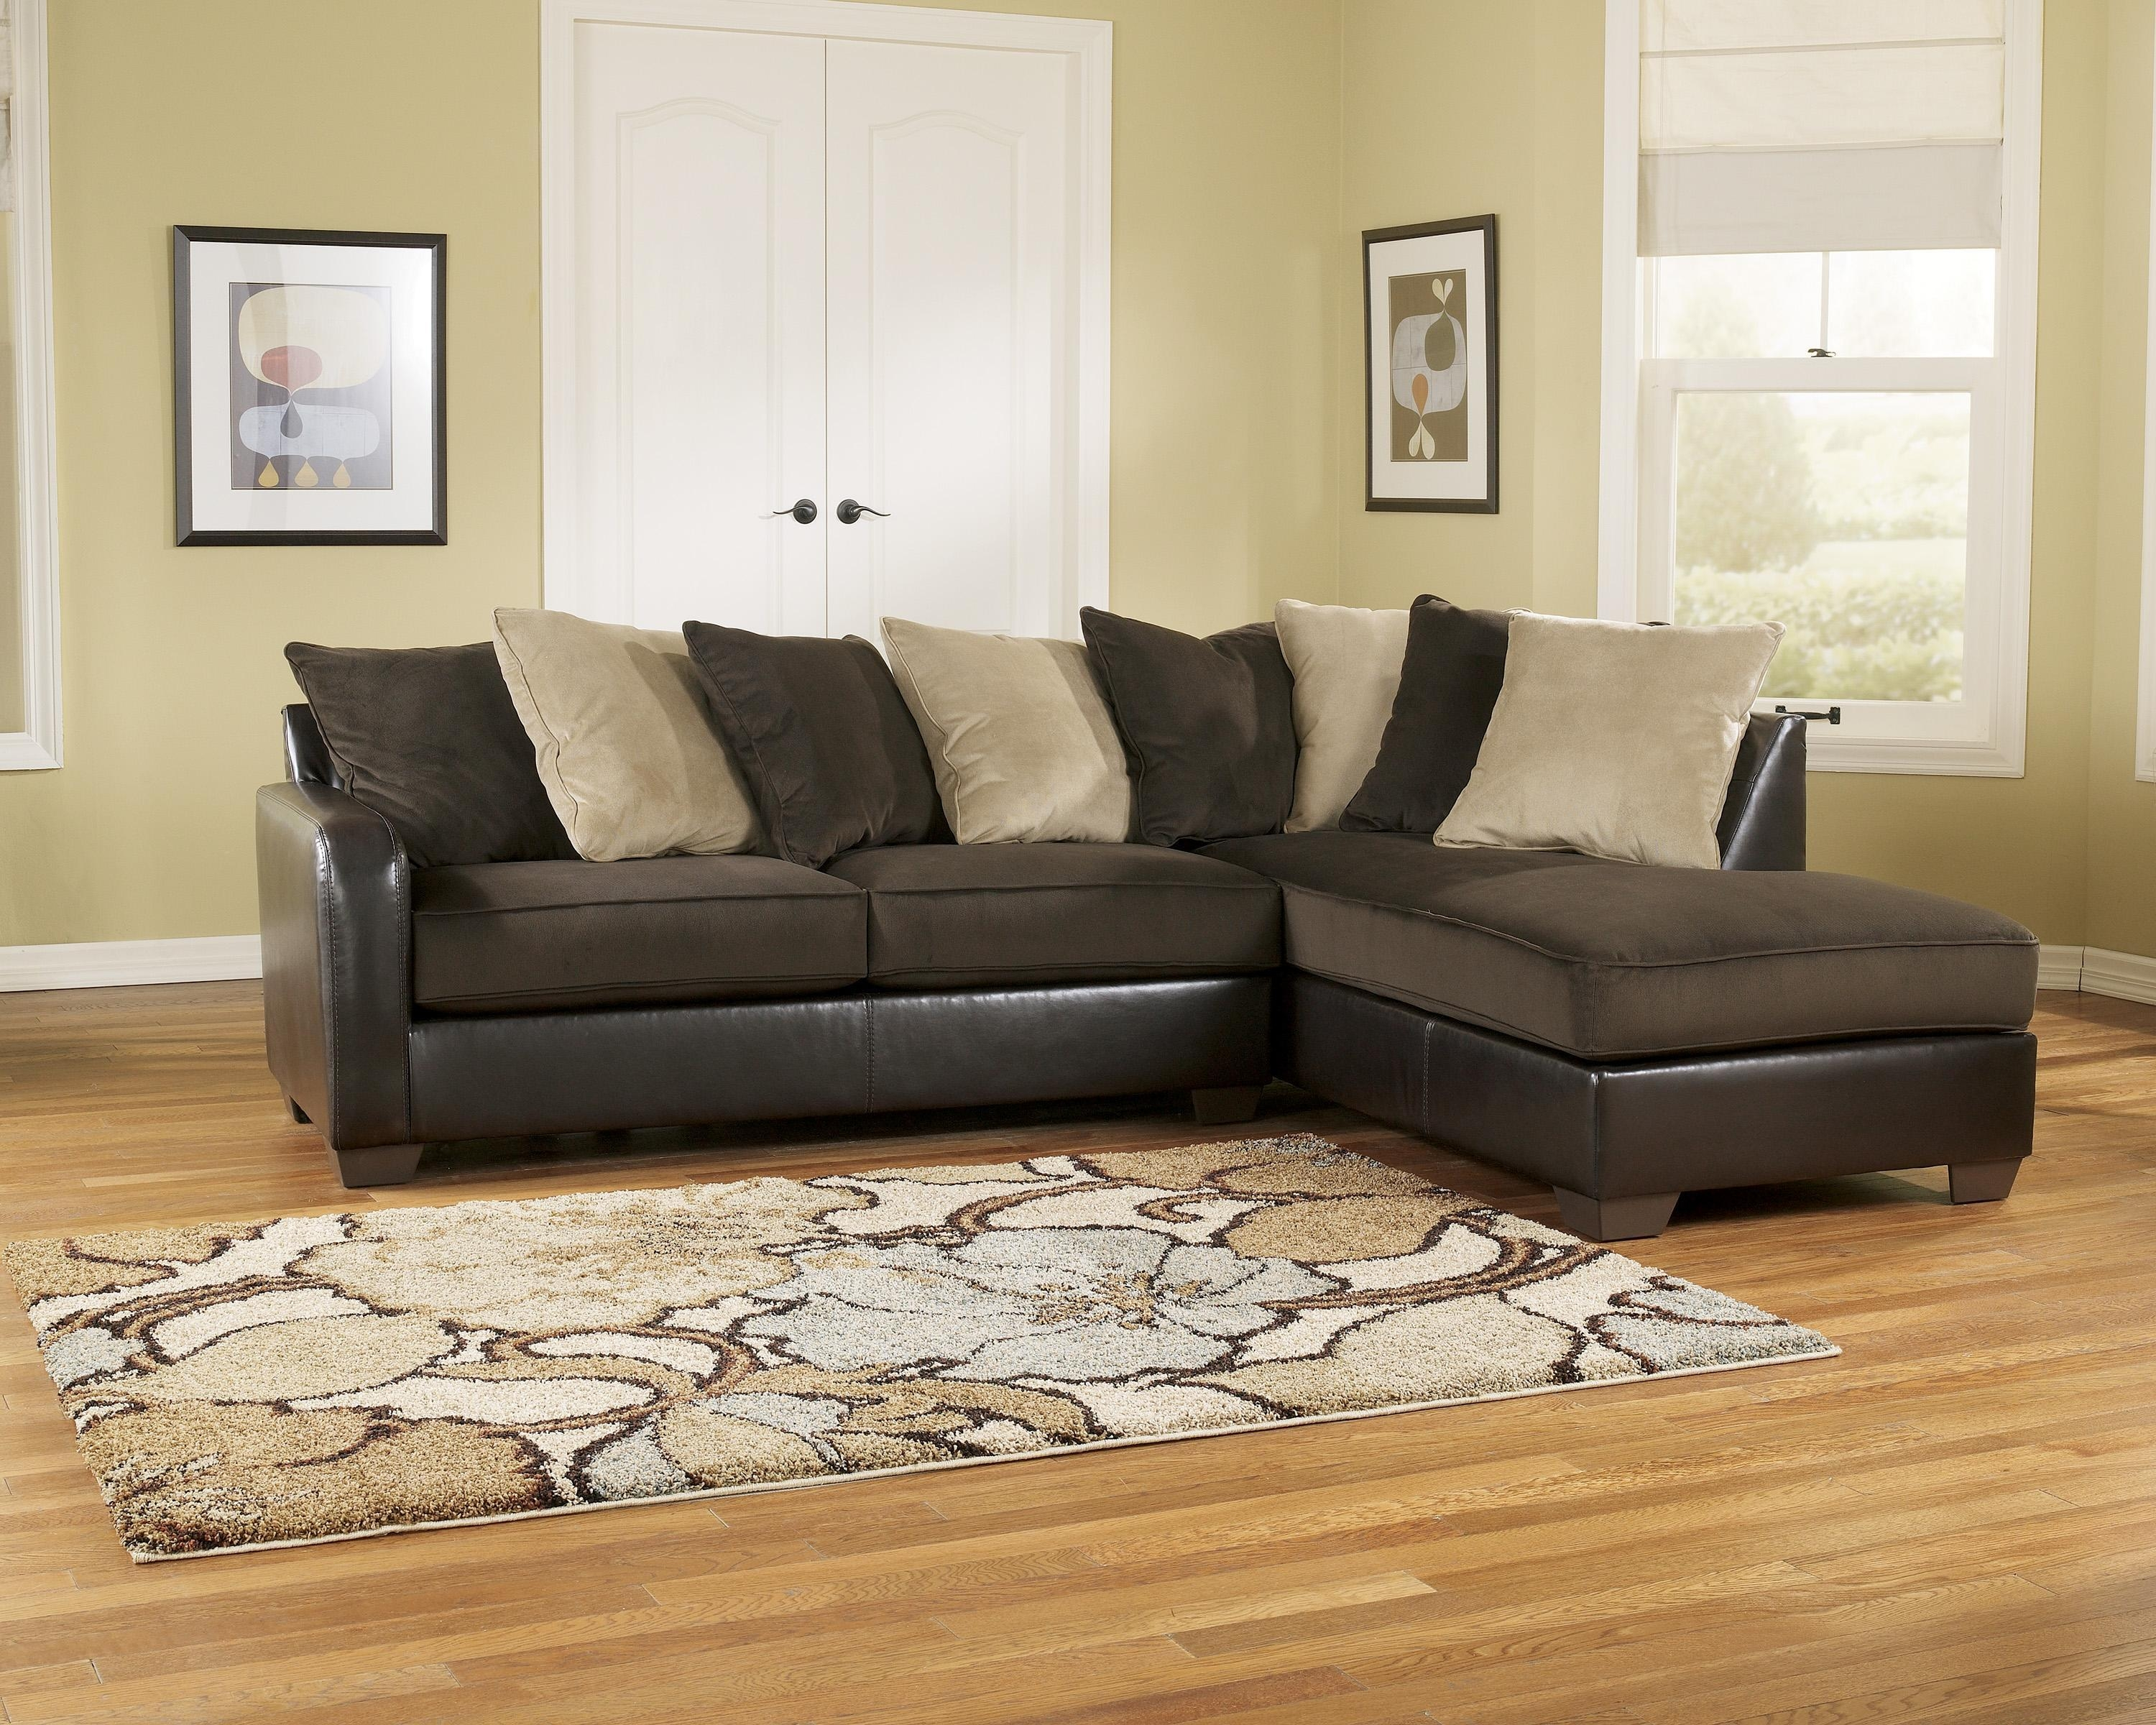 Genial Featured Image Of Sectional Sofas Ashley Furniture